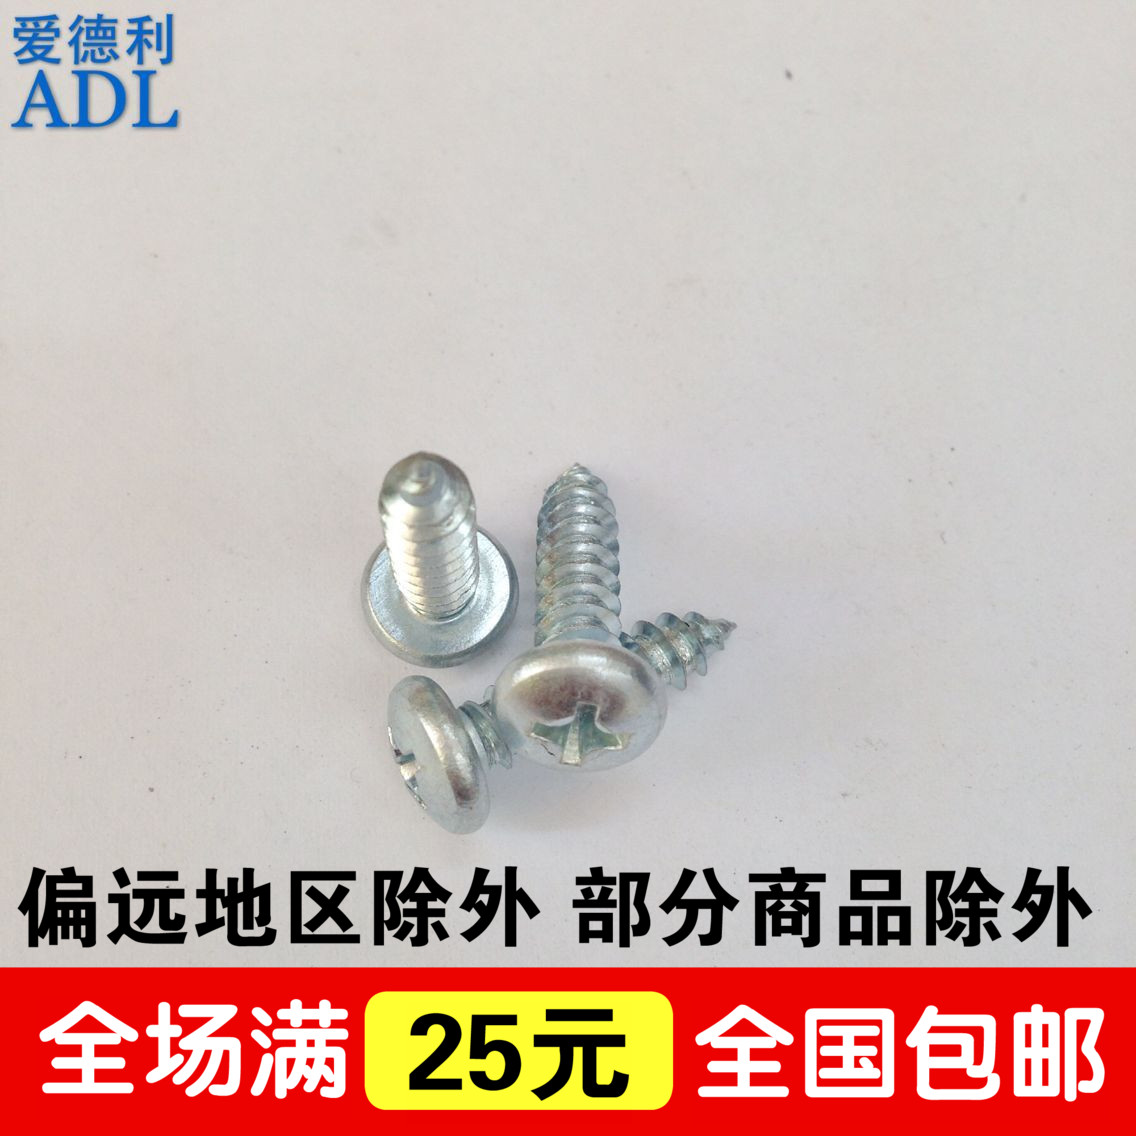 Shanghai hardened blue zinc plated cross recessed round head self tapping screws pan head self tapping screws st3.9